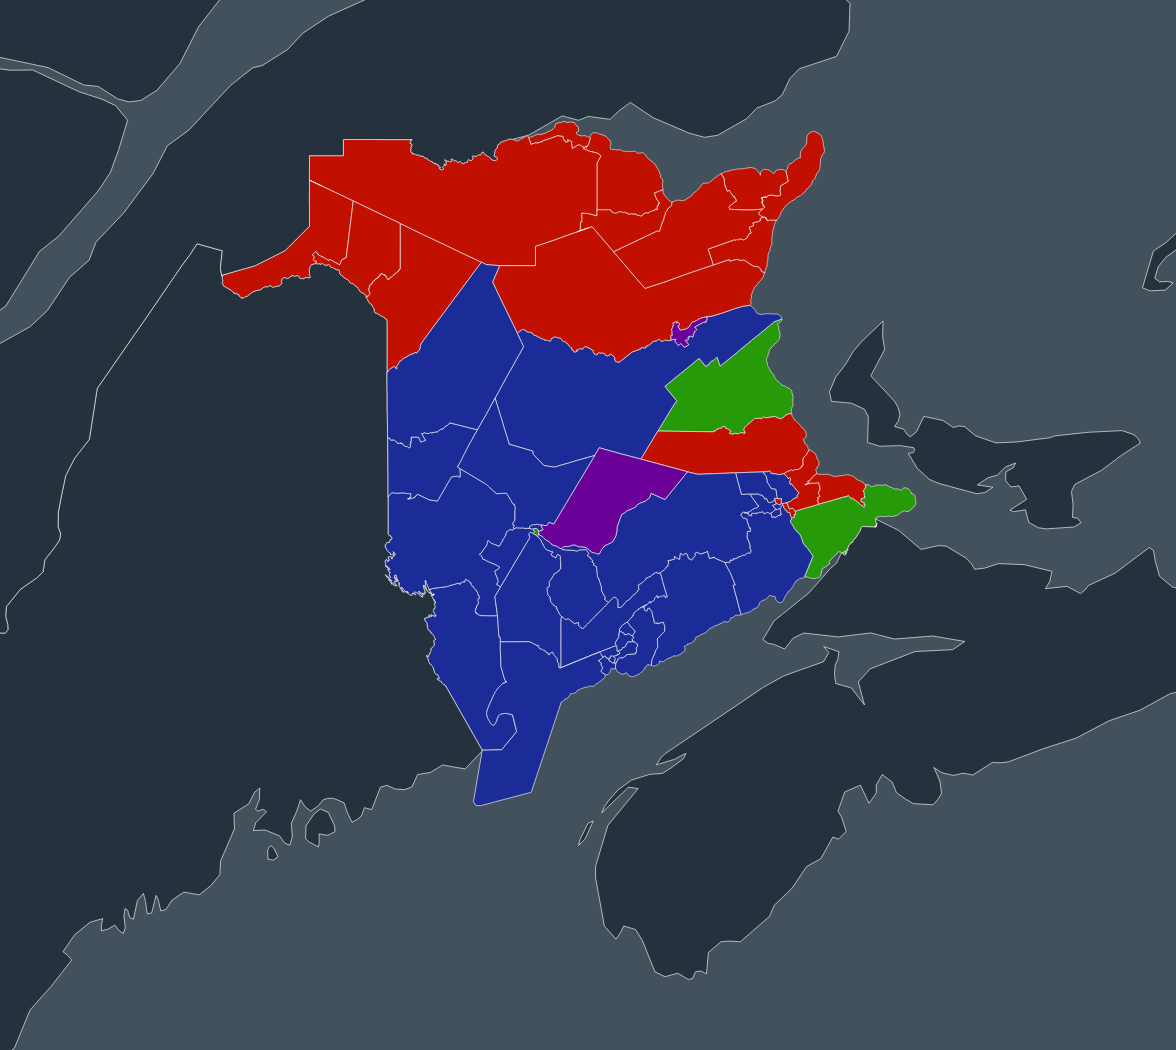 The New Brunswick electoral map shows that northern, traditionally Acadian ridings vote red.